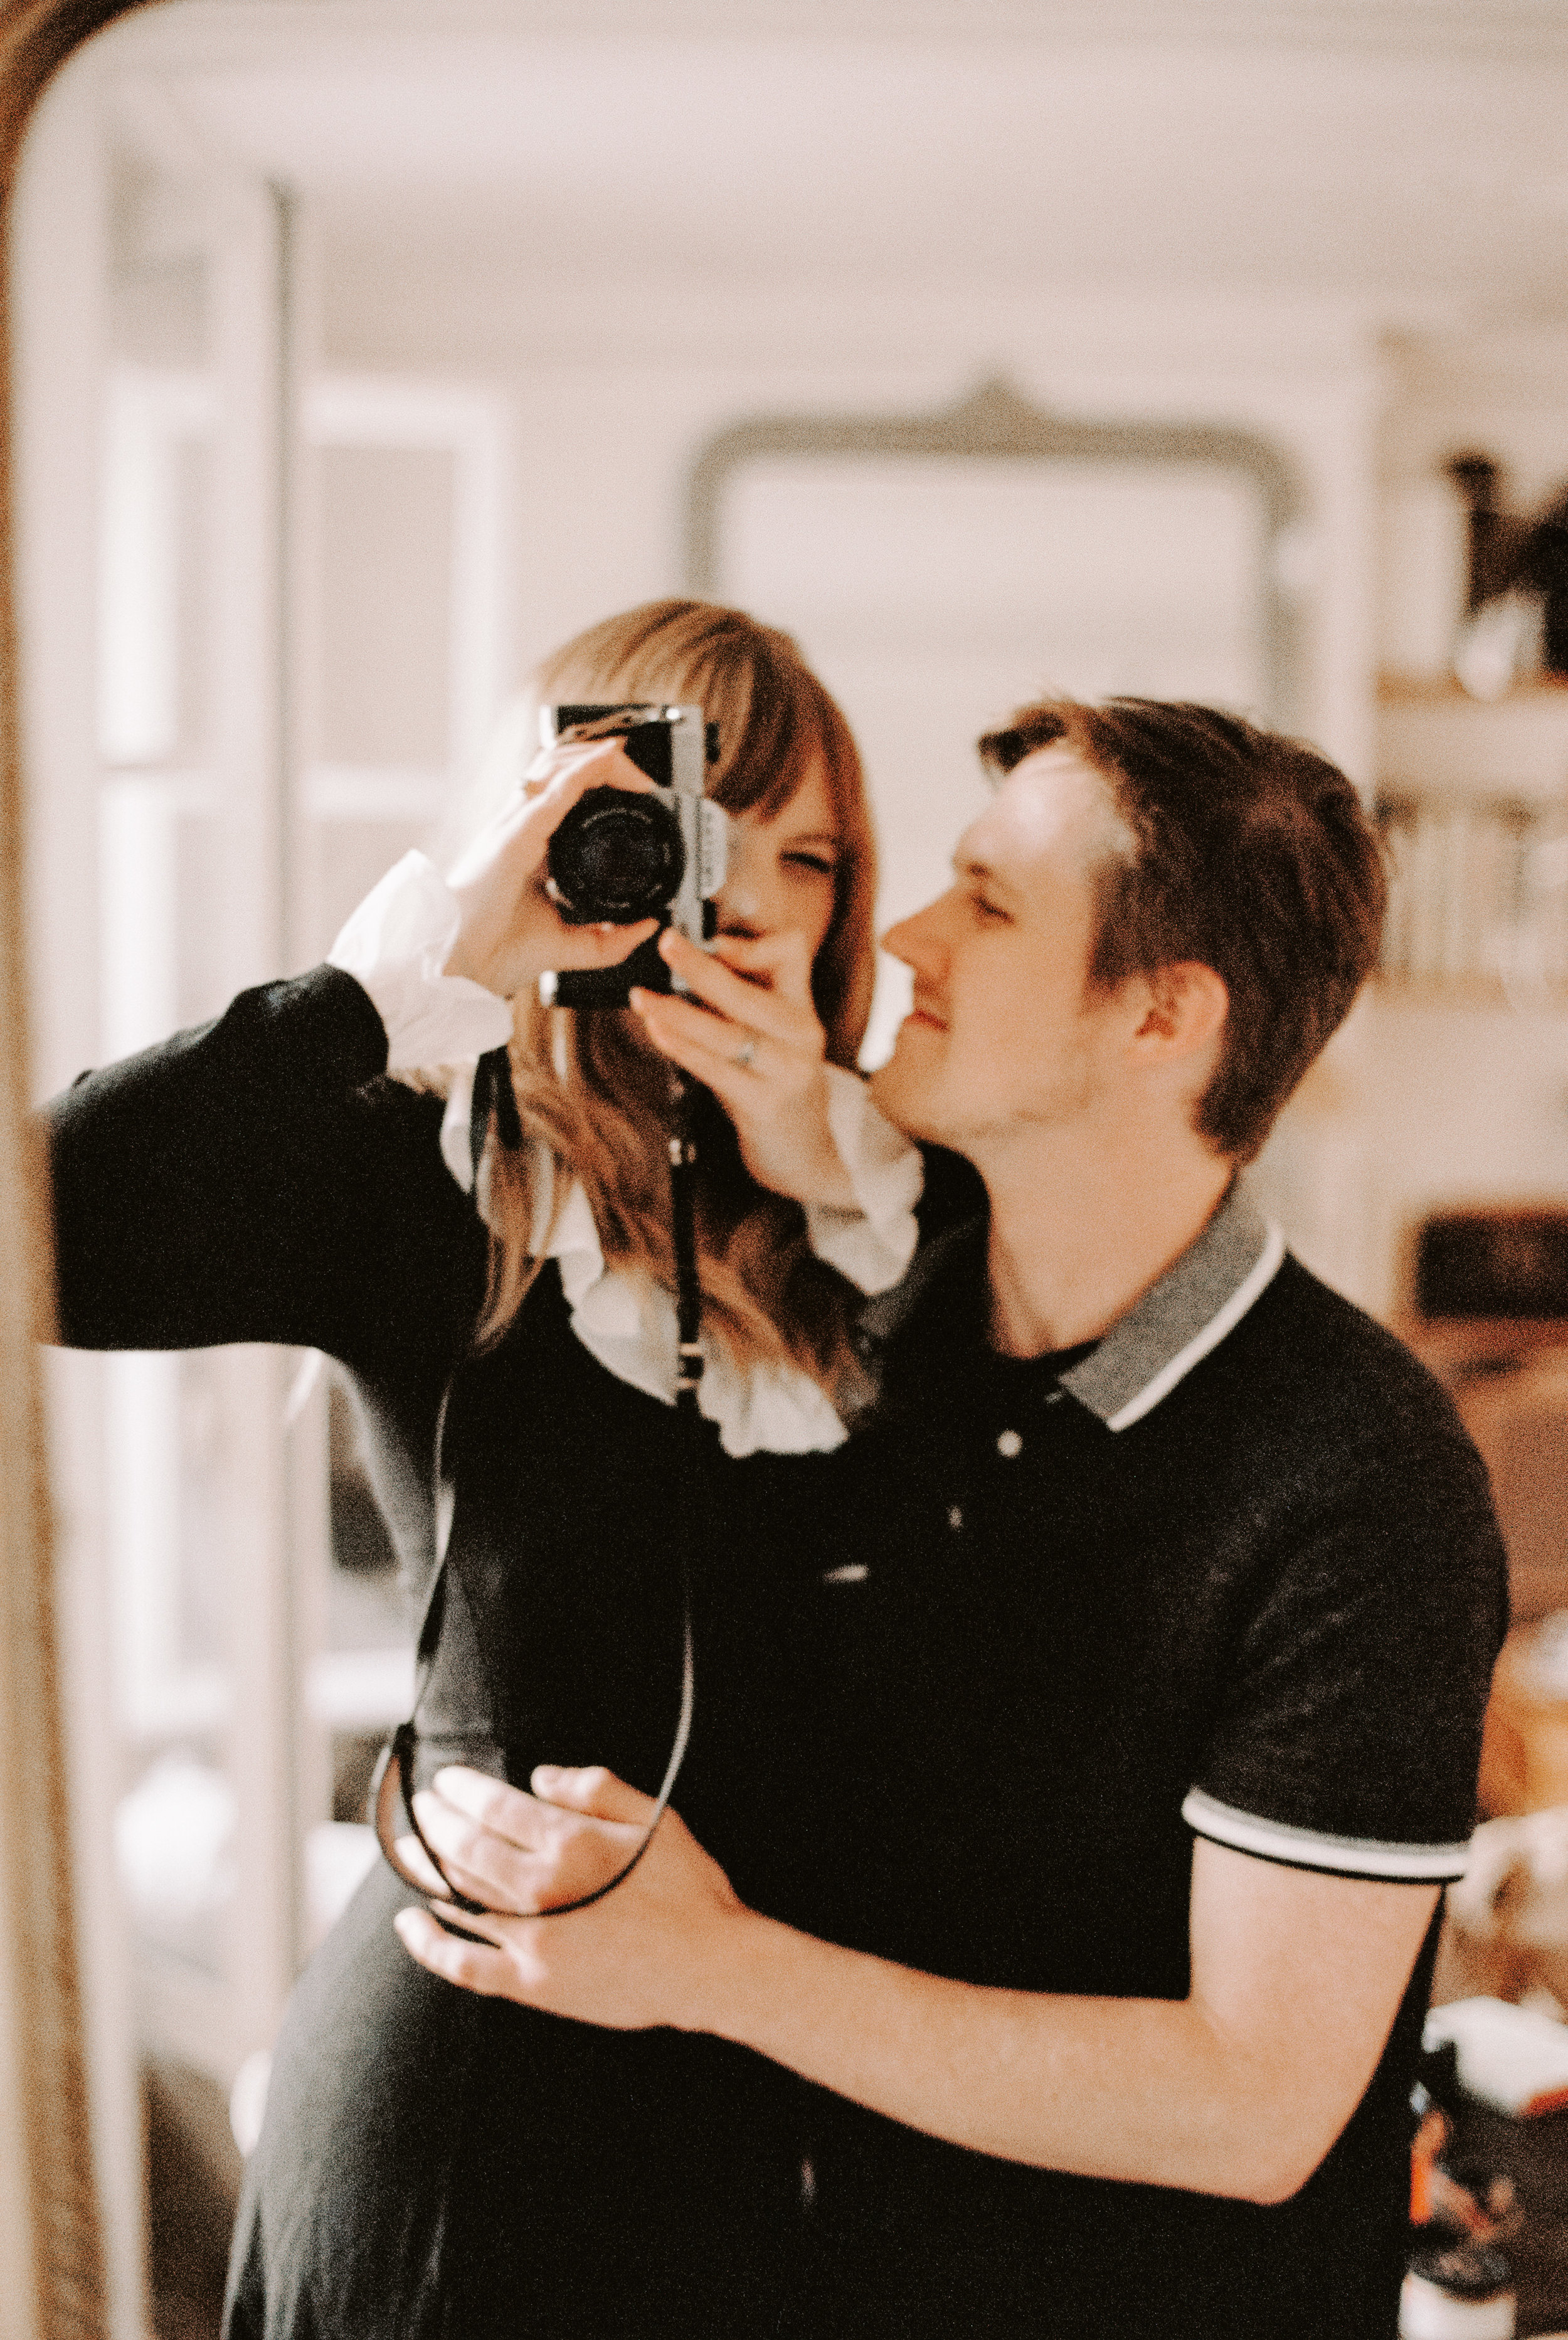 A blurry, out of focus self portrait of us in the apartment right before we headed to dinner at La Boîte aux Lettres. A favorite.